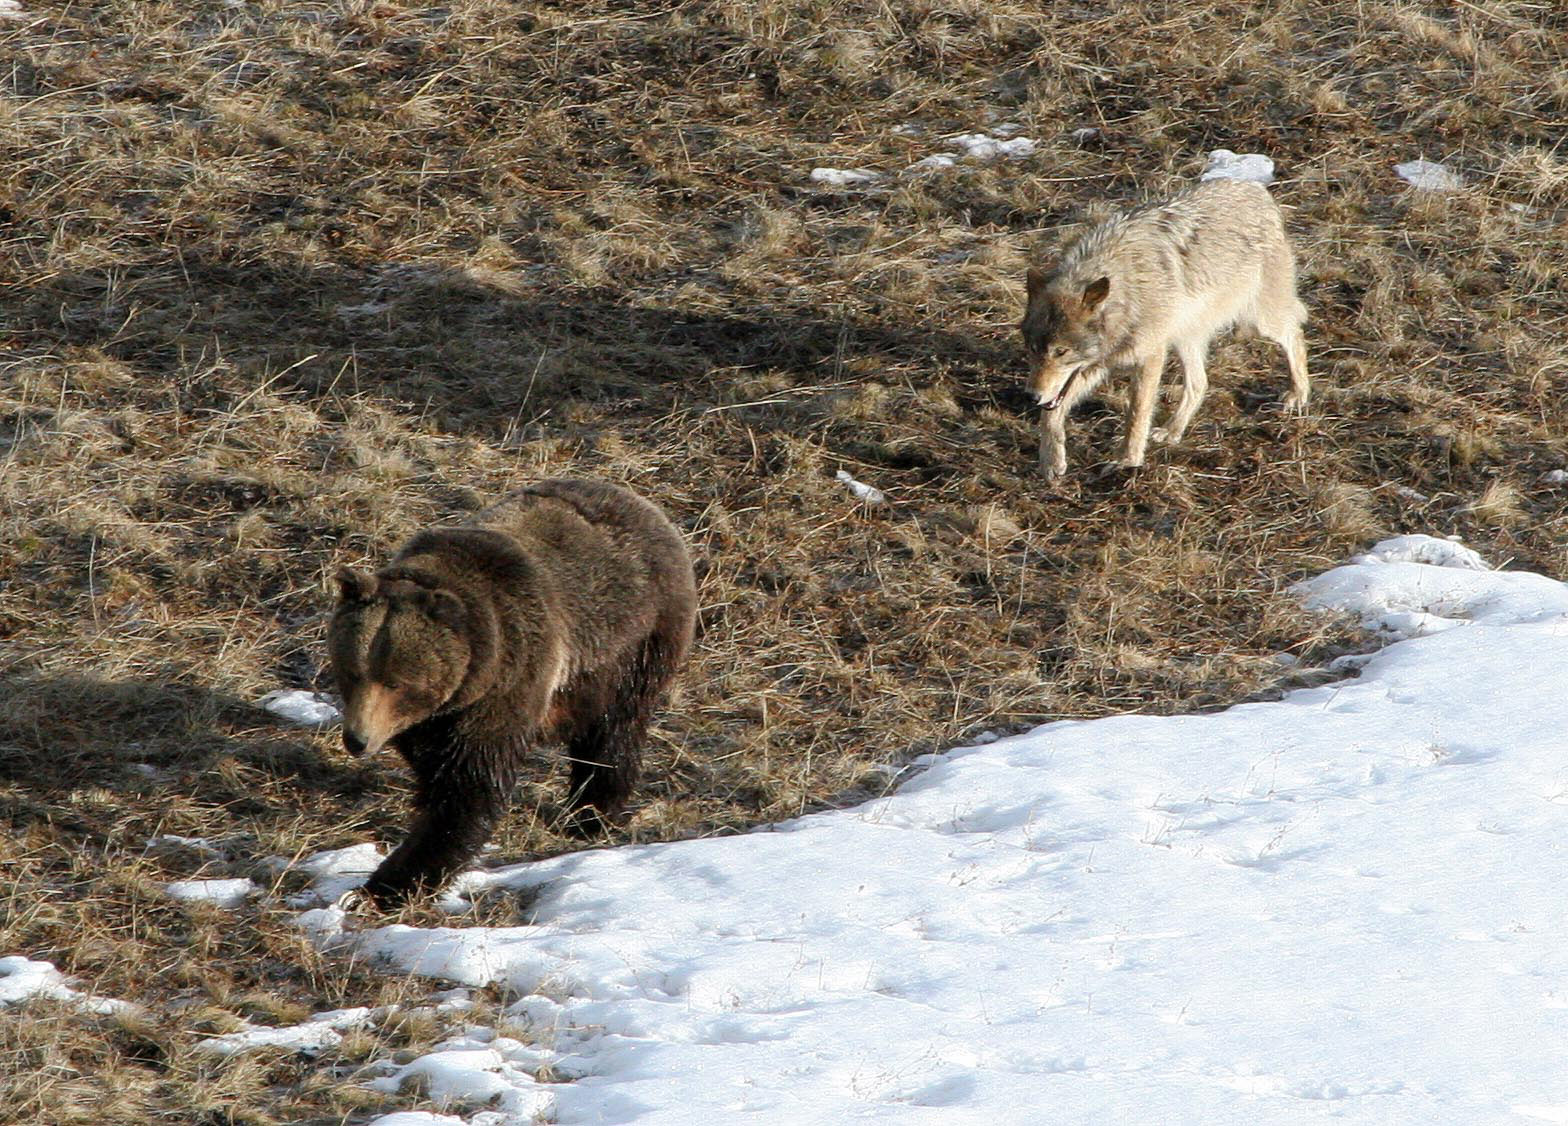 a brown bear and a wolf skirt a pile of snow against a backdrop of dried grass.